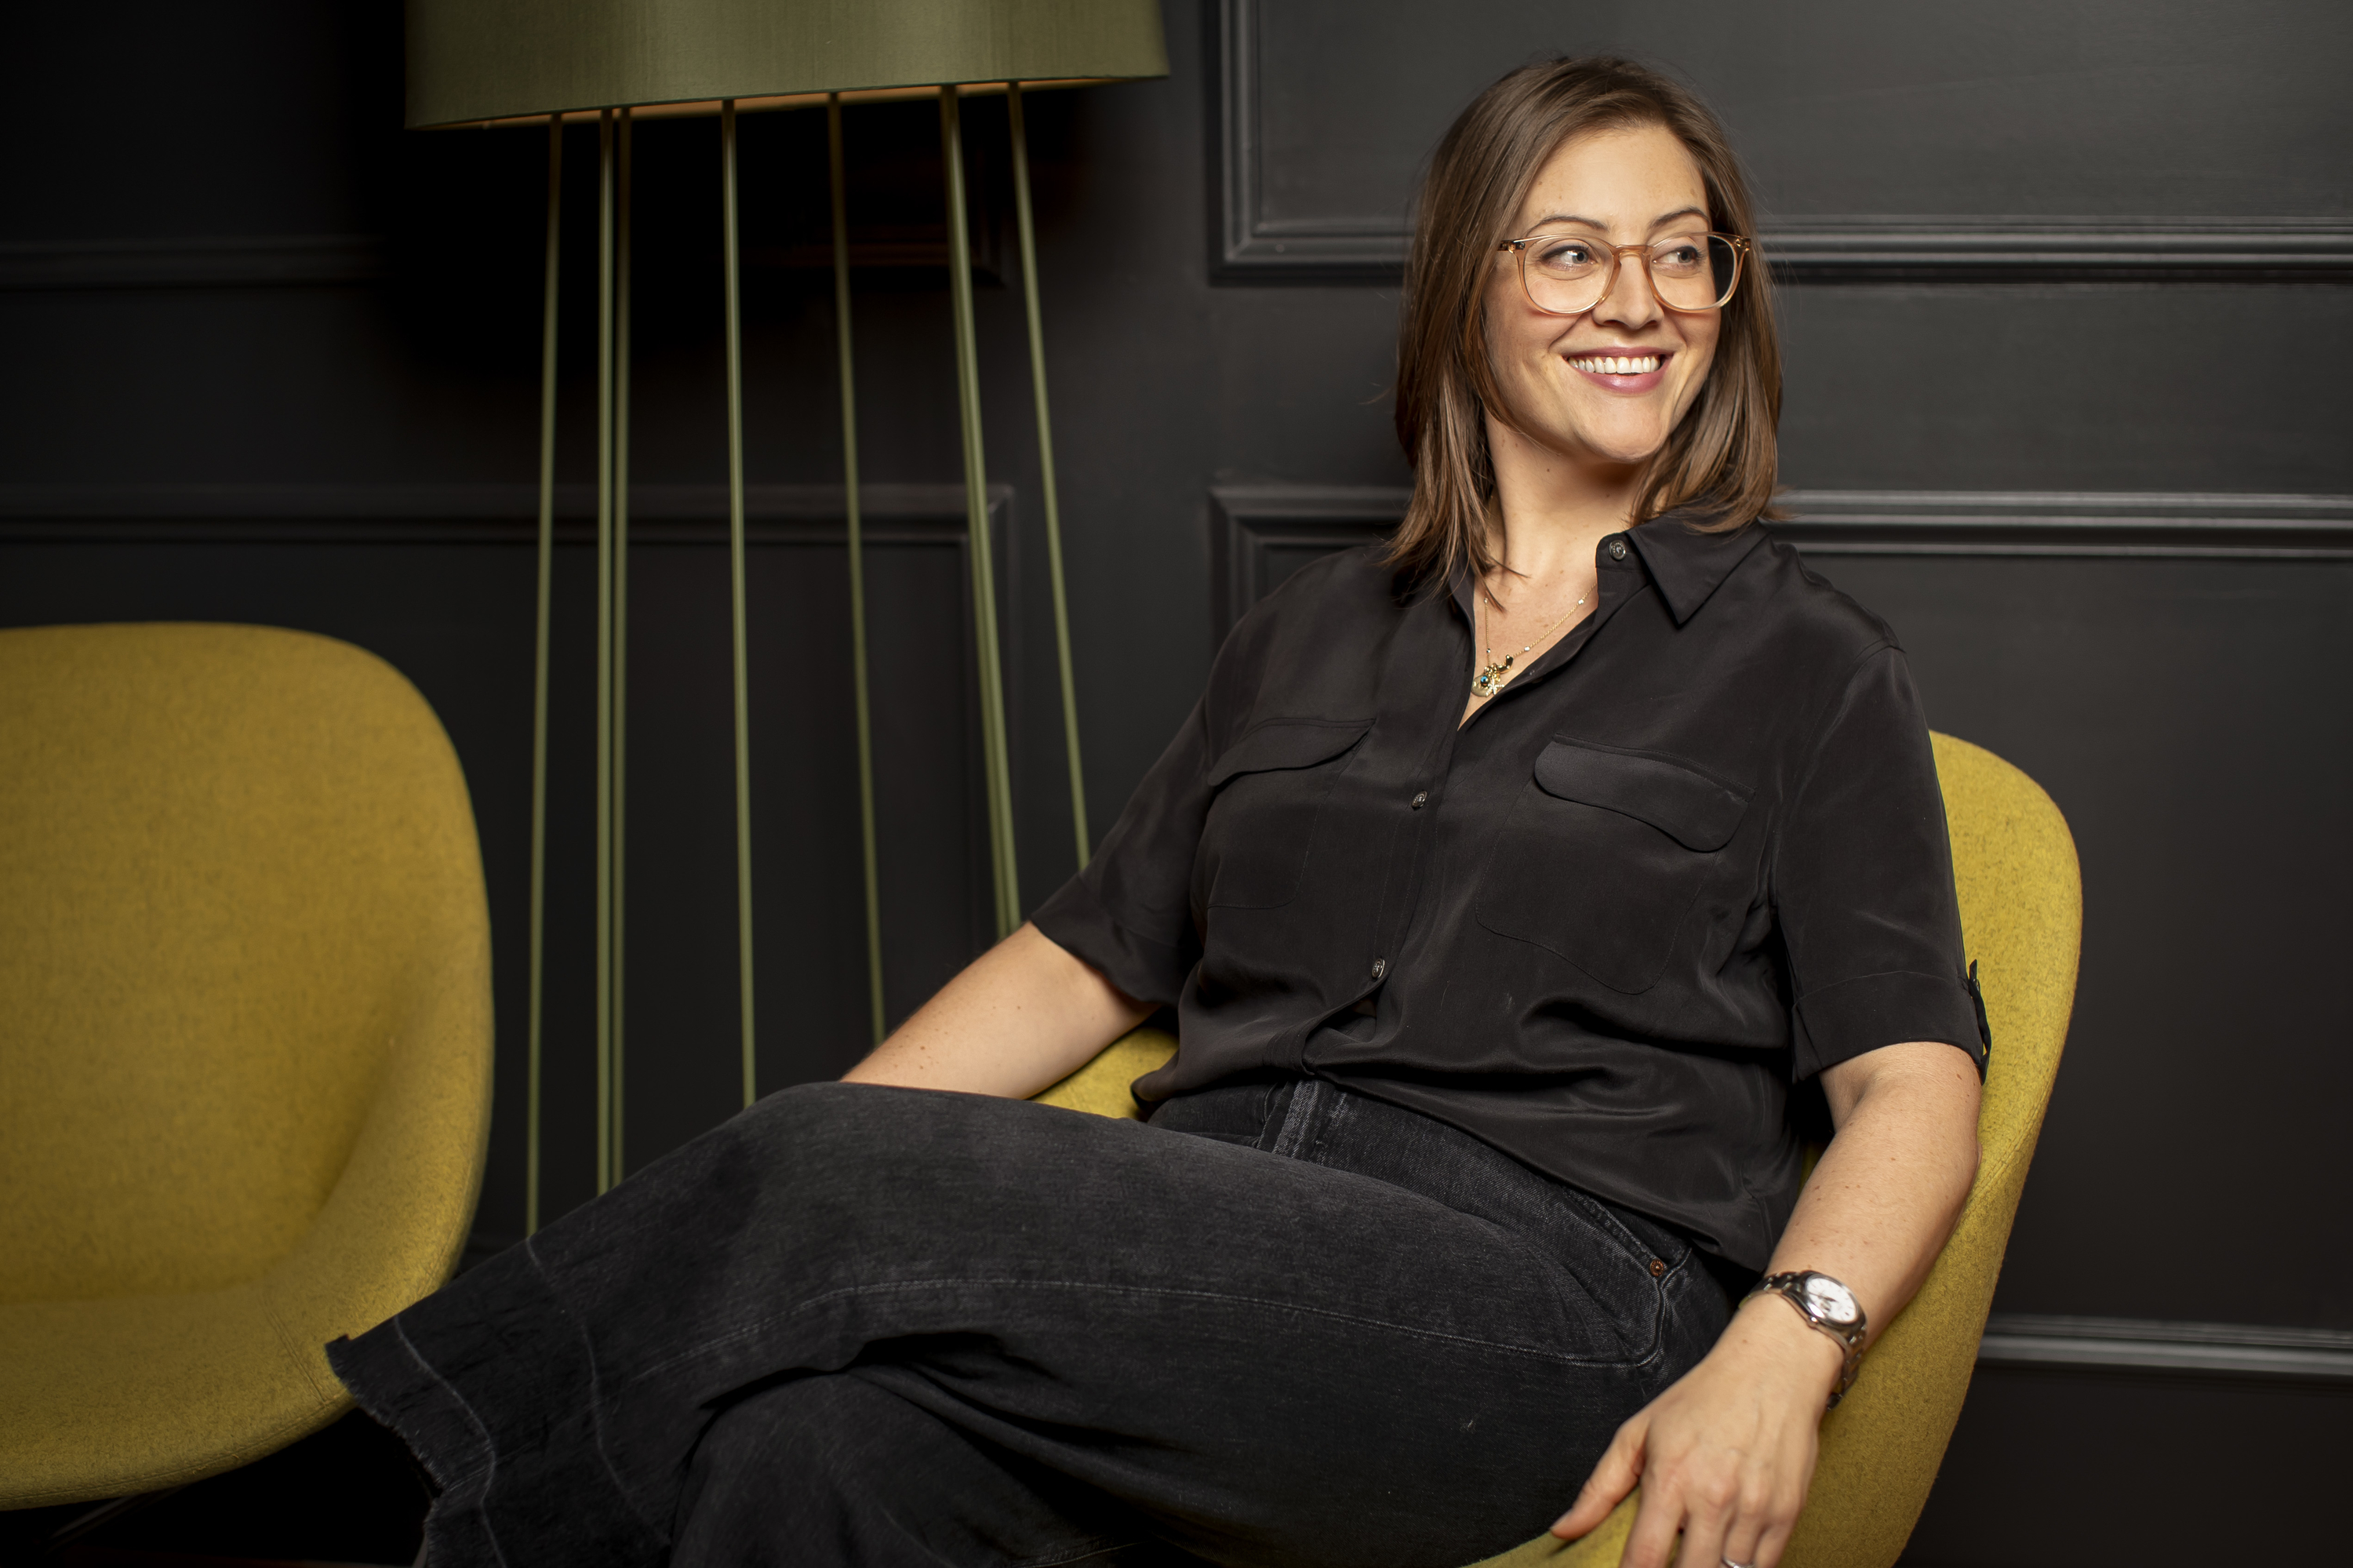 Ex-Spotify exec Jackie Jantos joins Dashlane as company names AOR and begins major consumer push